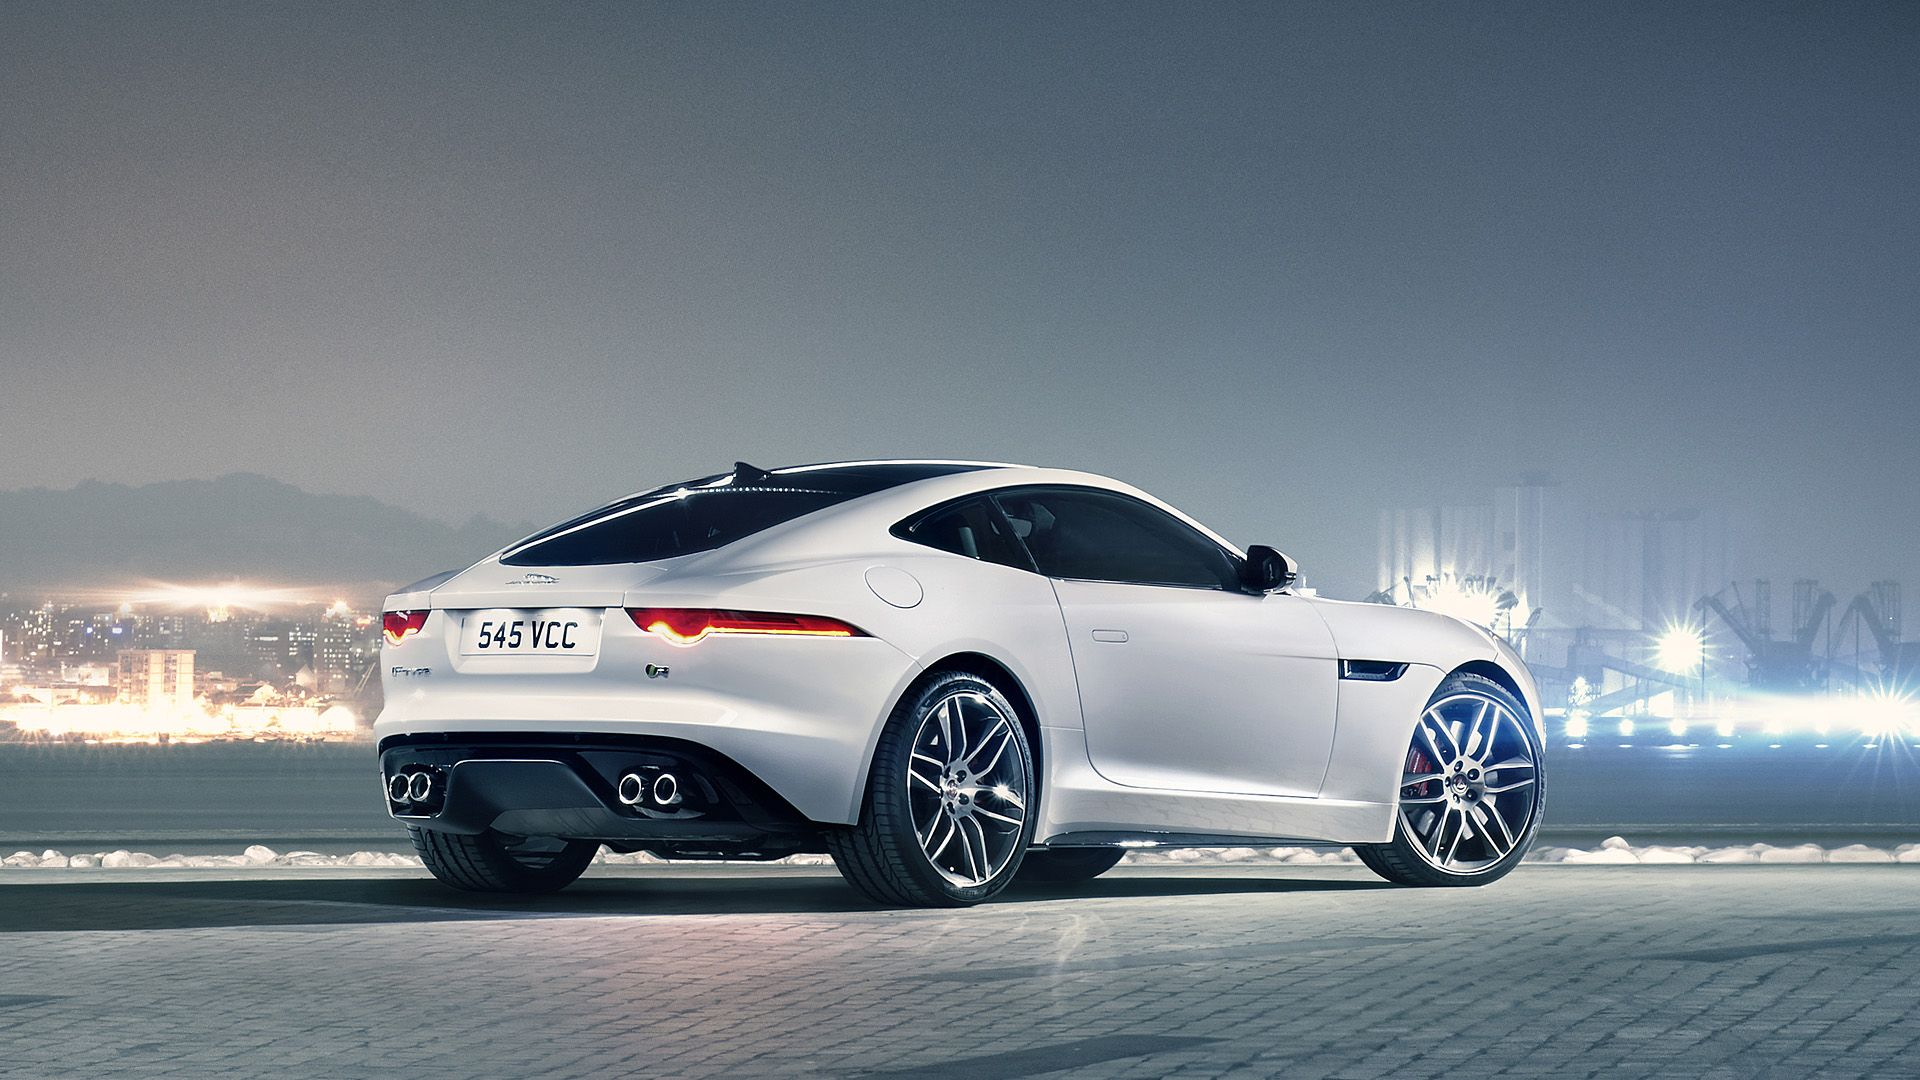 Jaguar Car Wallpapers Desktop On Wallpaper 1080p HD